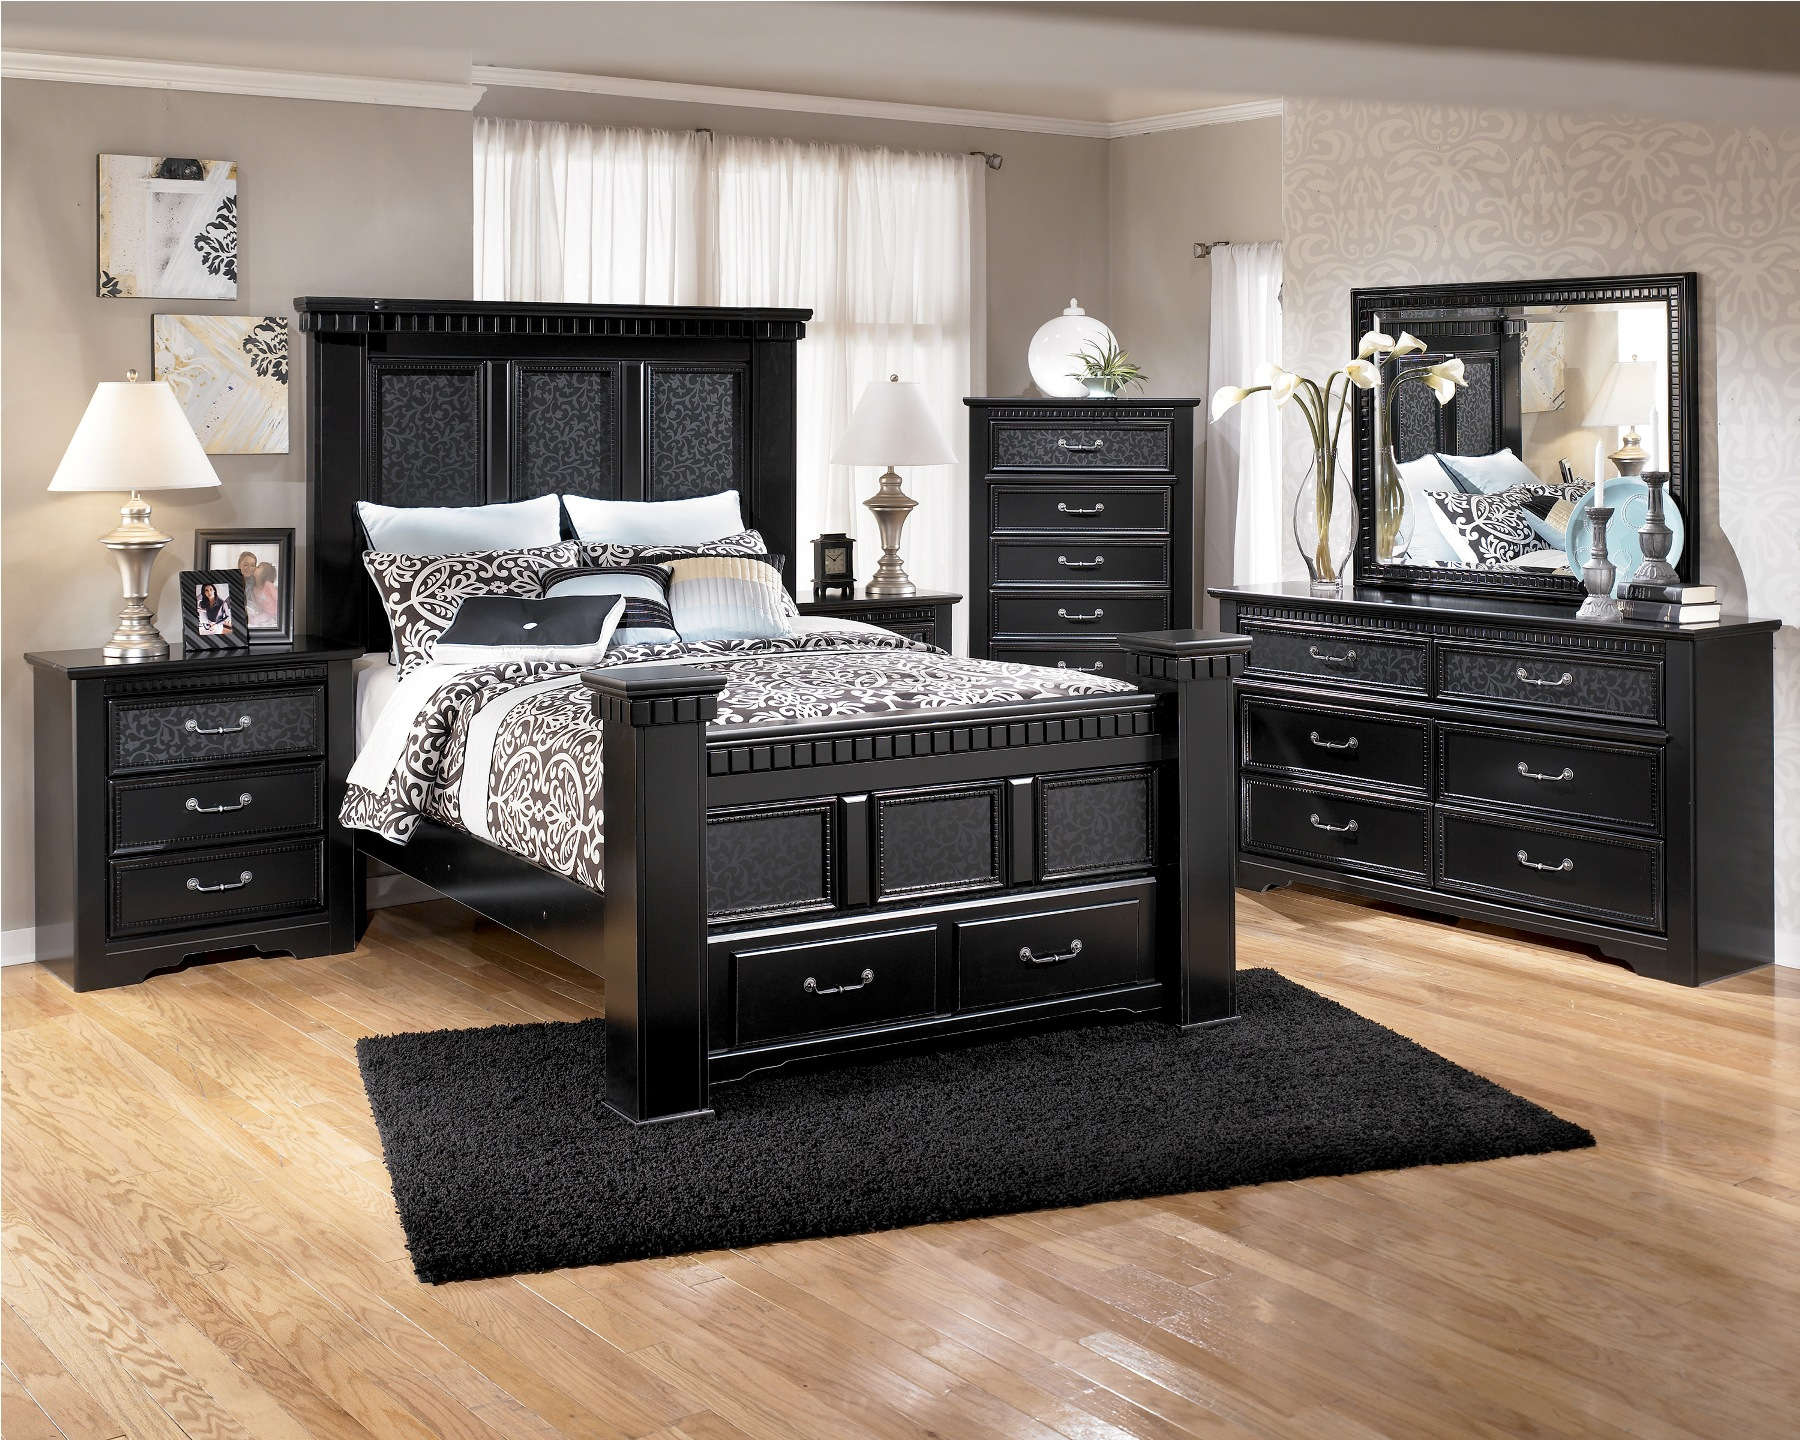 25 bedroom furniture design ideas for Bedroom furniture